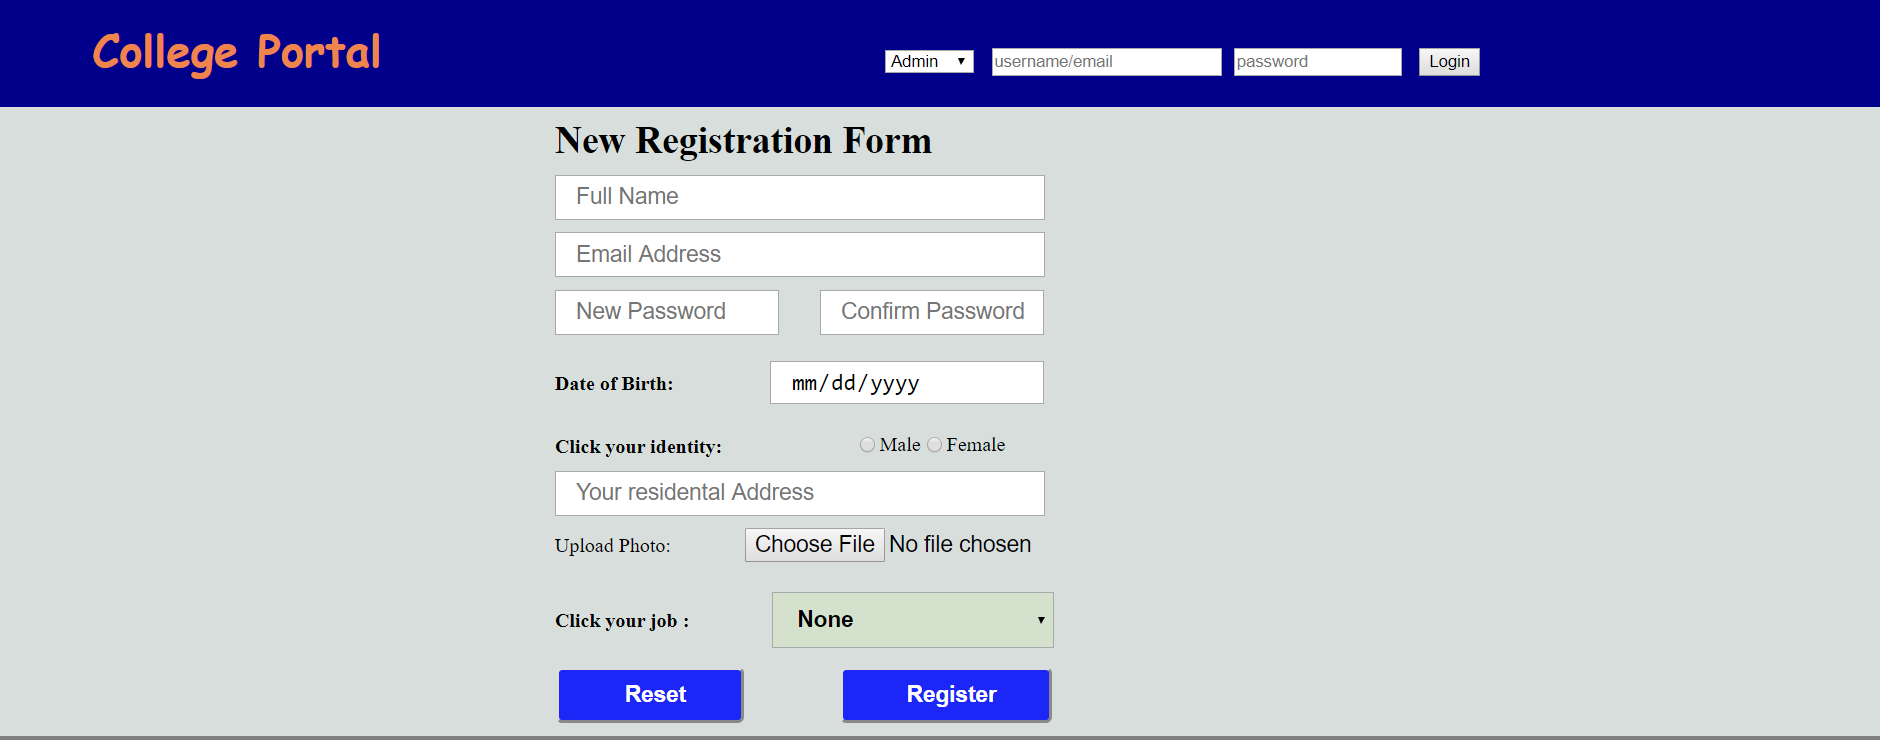 image of Enrollment System